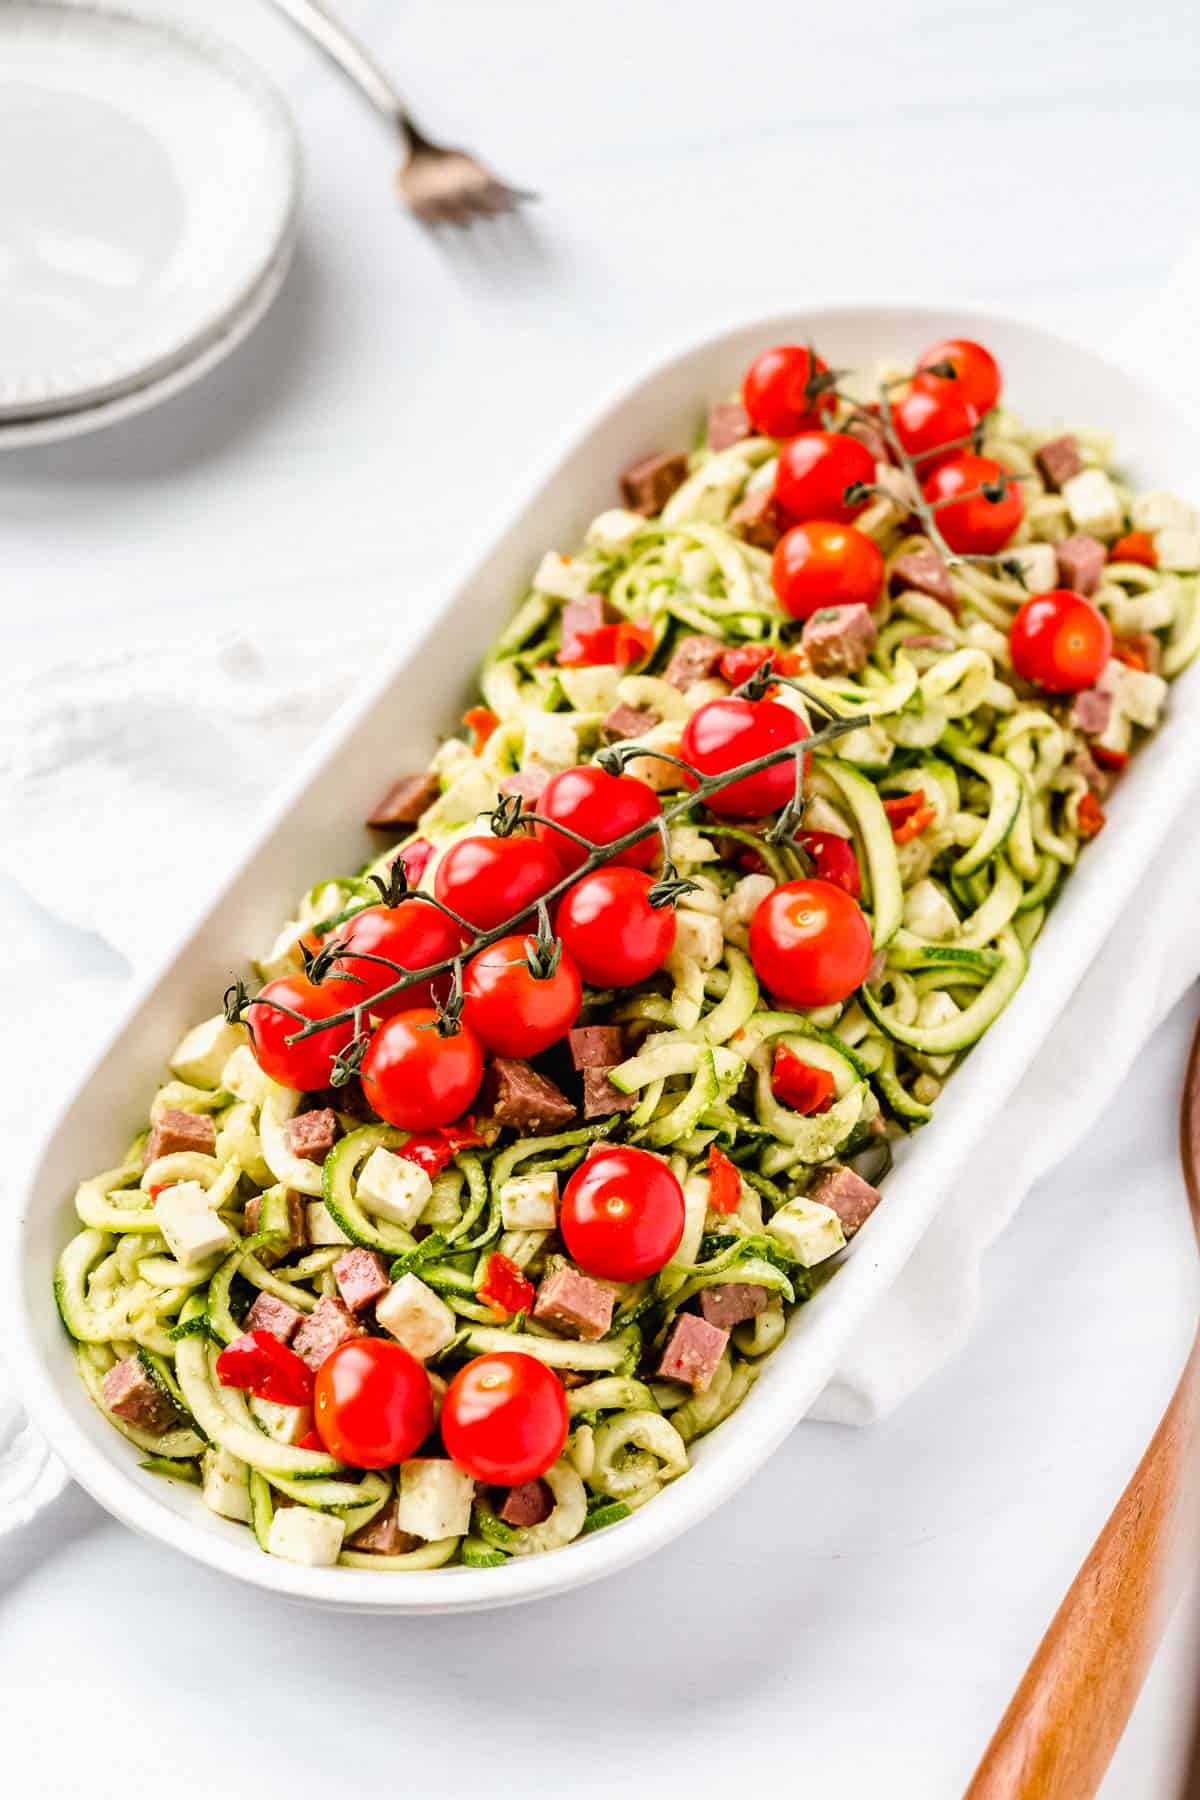 Zucchini Pesto Pasta Salad in an oval serving dish on a white background with 2 white plates and a small fork behind it